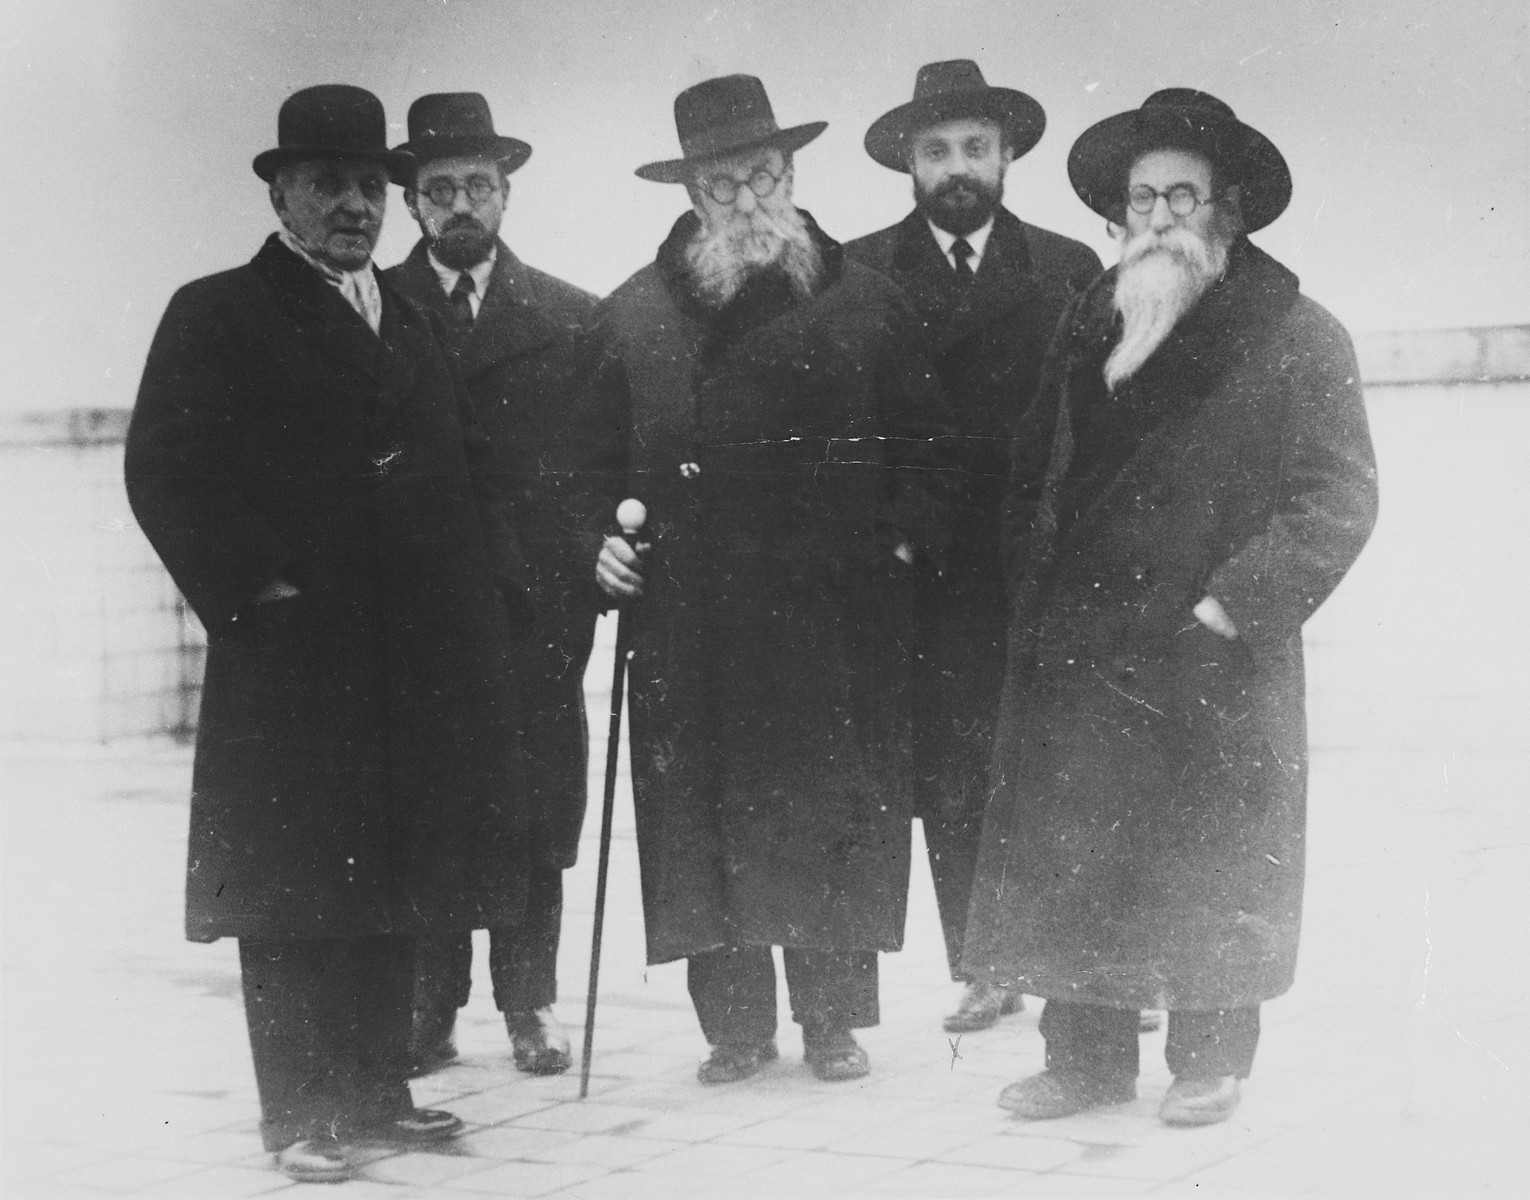 Group portrait of five Hungarian rabbis.  Pictured second from the right is Rabbi Nossen Schueck, a relative of the donor. The first person on the right is Rabbi Yonasan (Johnathan) Stieff who served as Chief Rabbi in Budapest after the war.